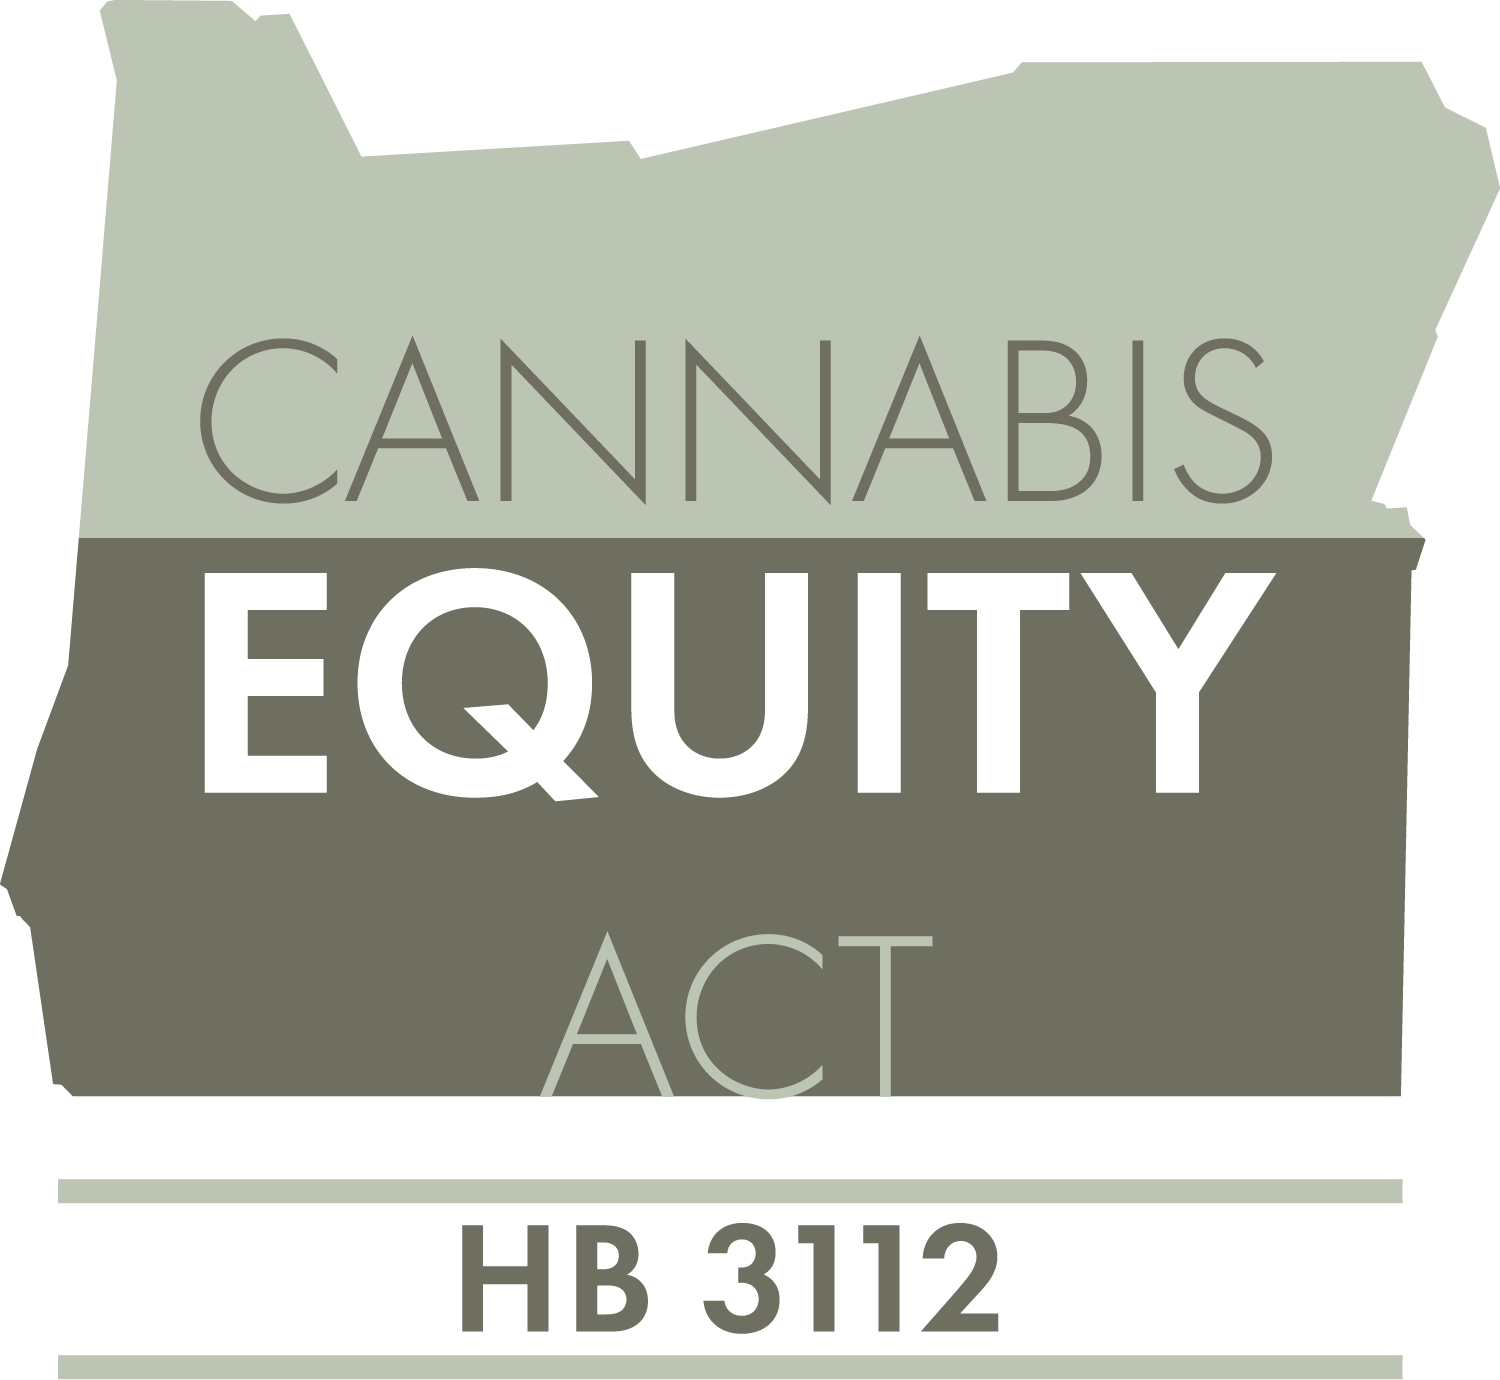 Cannabis Equity Act Logo HB 3112